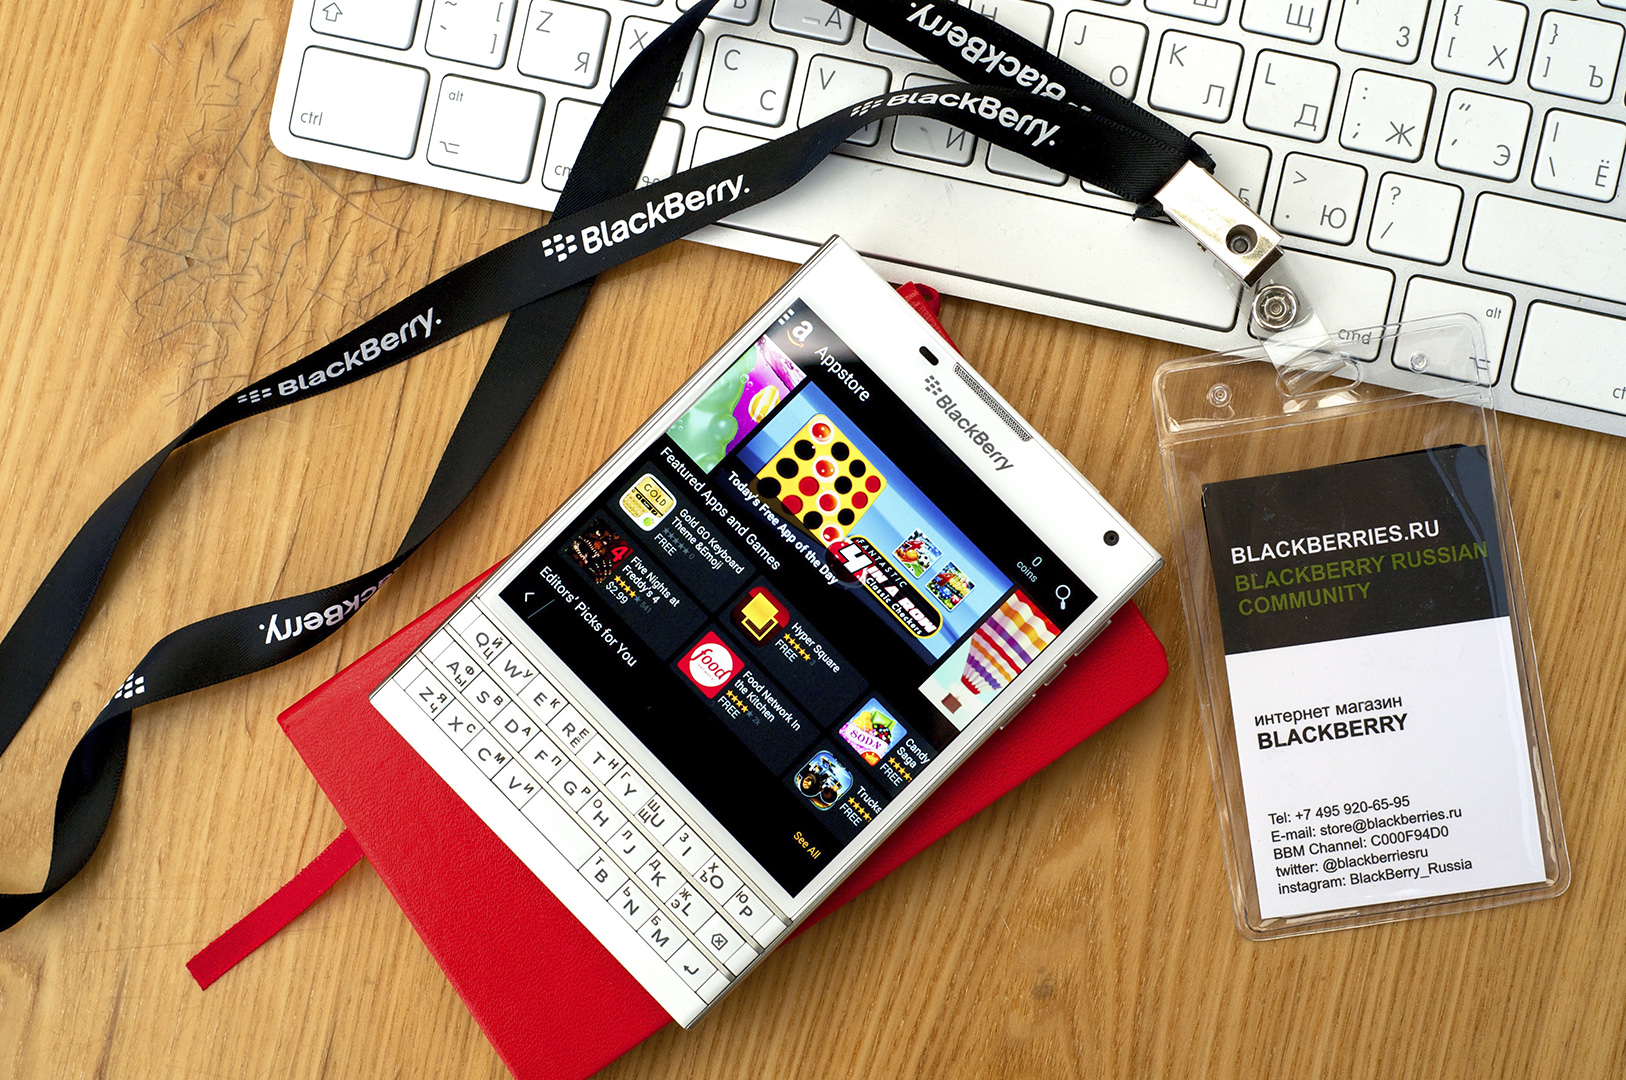 BlackBerry-Passport-Amazon-70